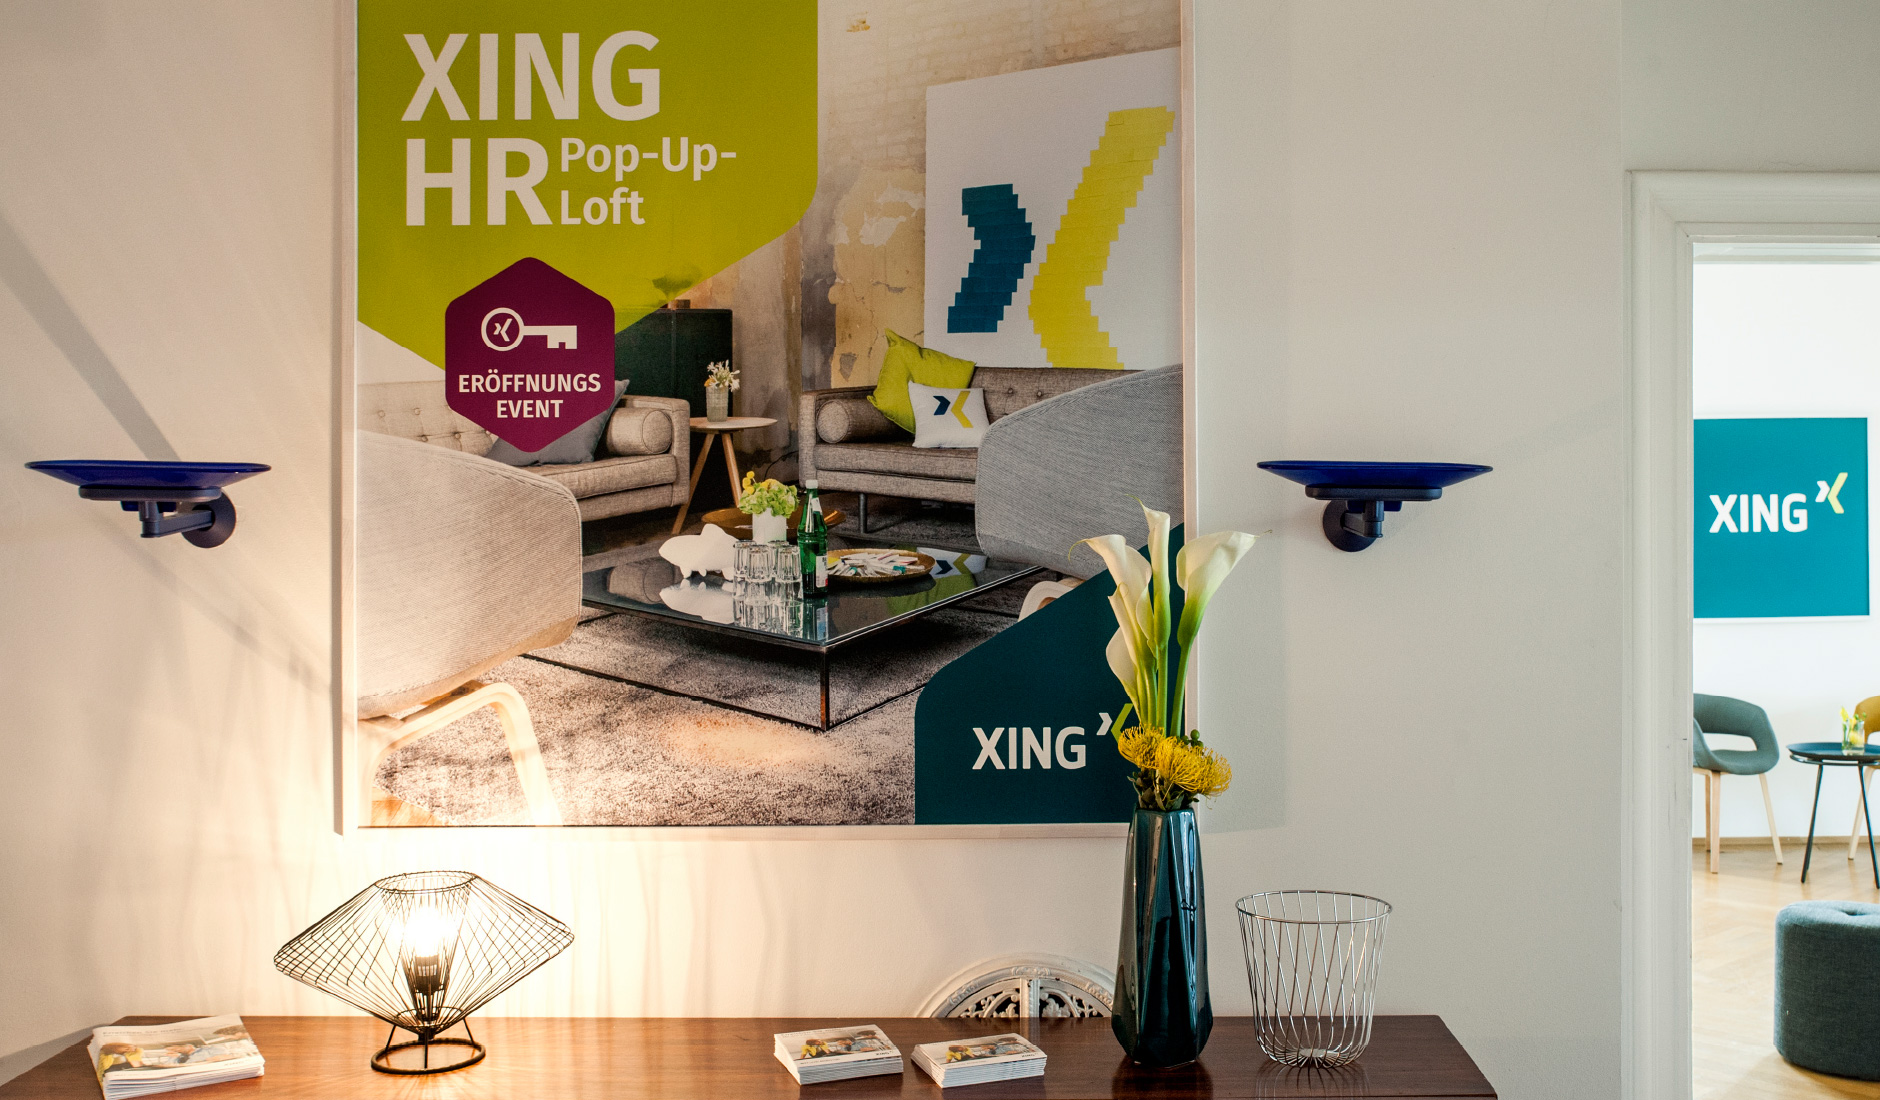 Xing AG - HR Pop-Up Loft